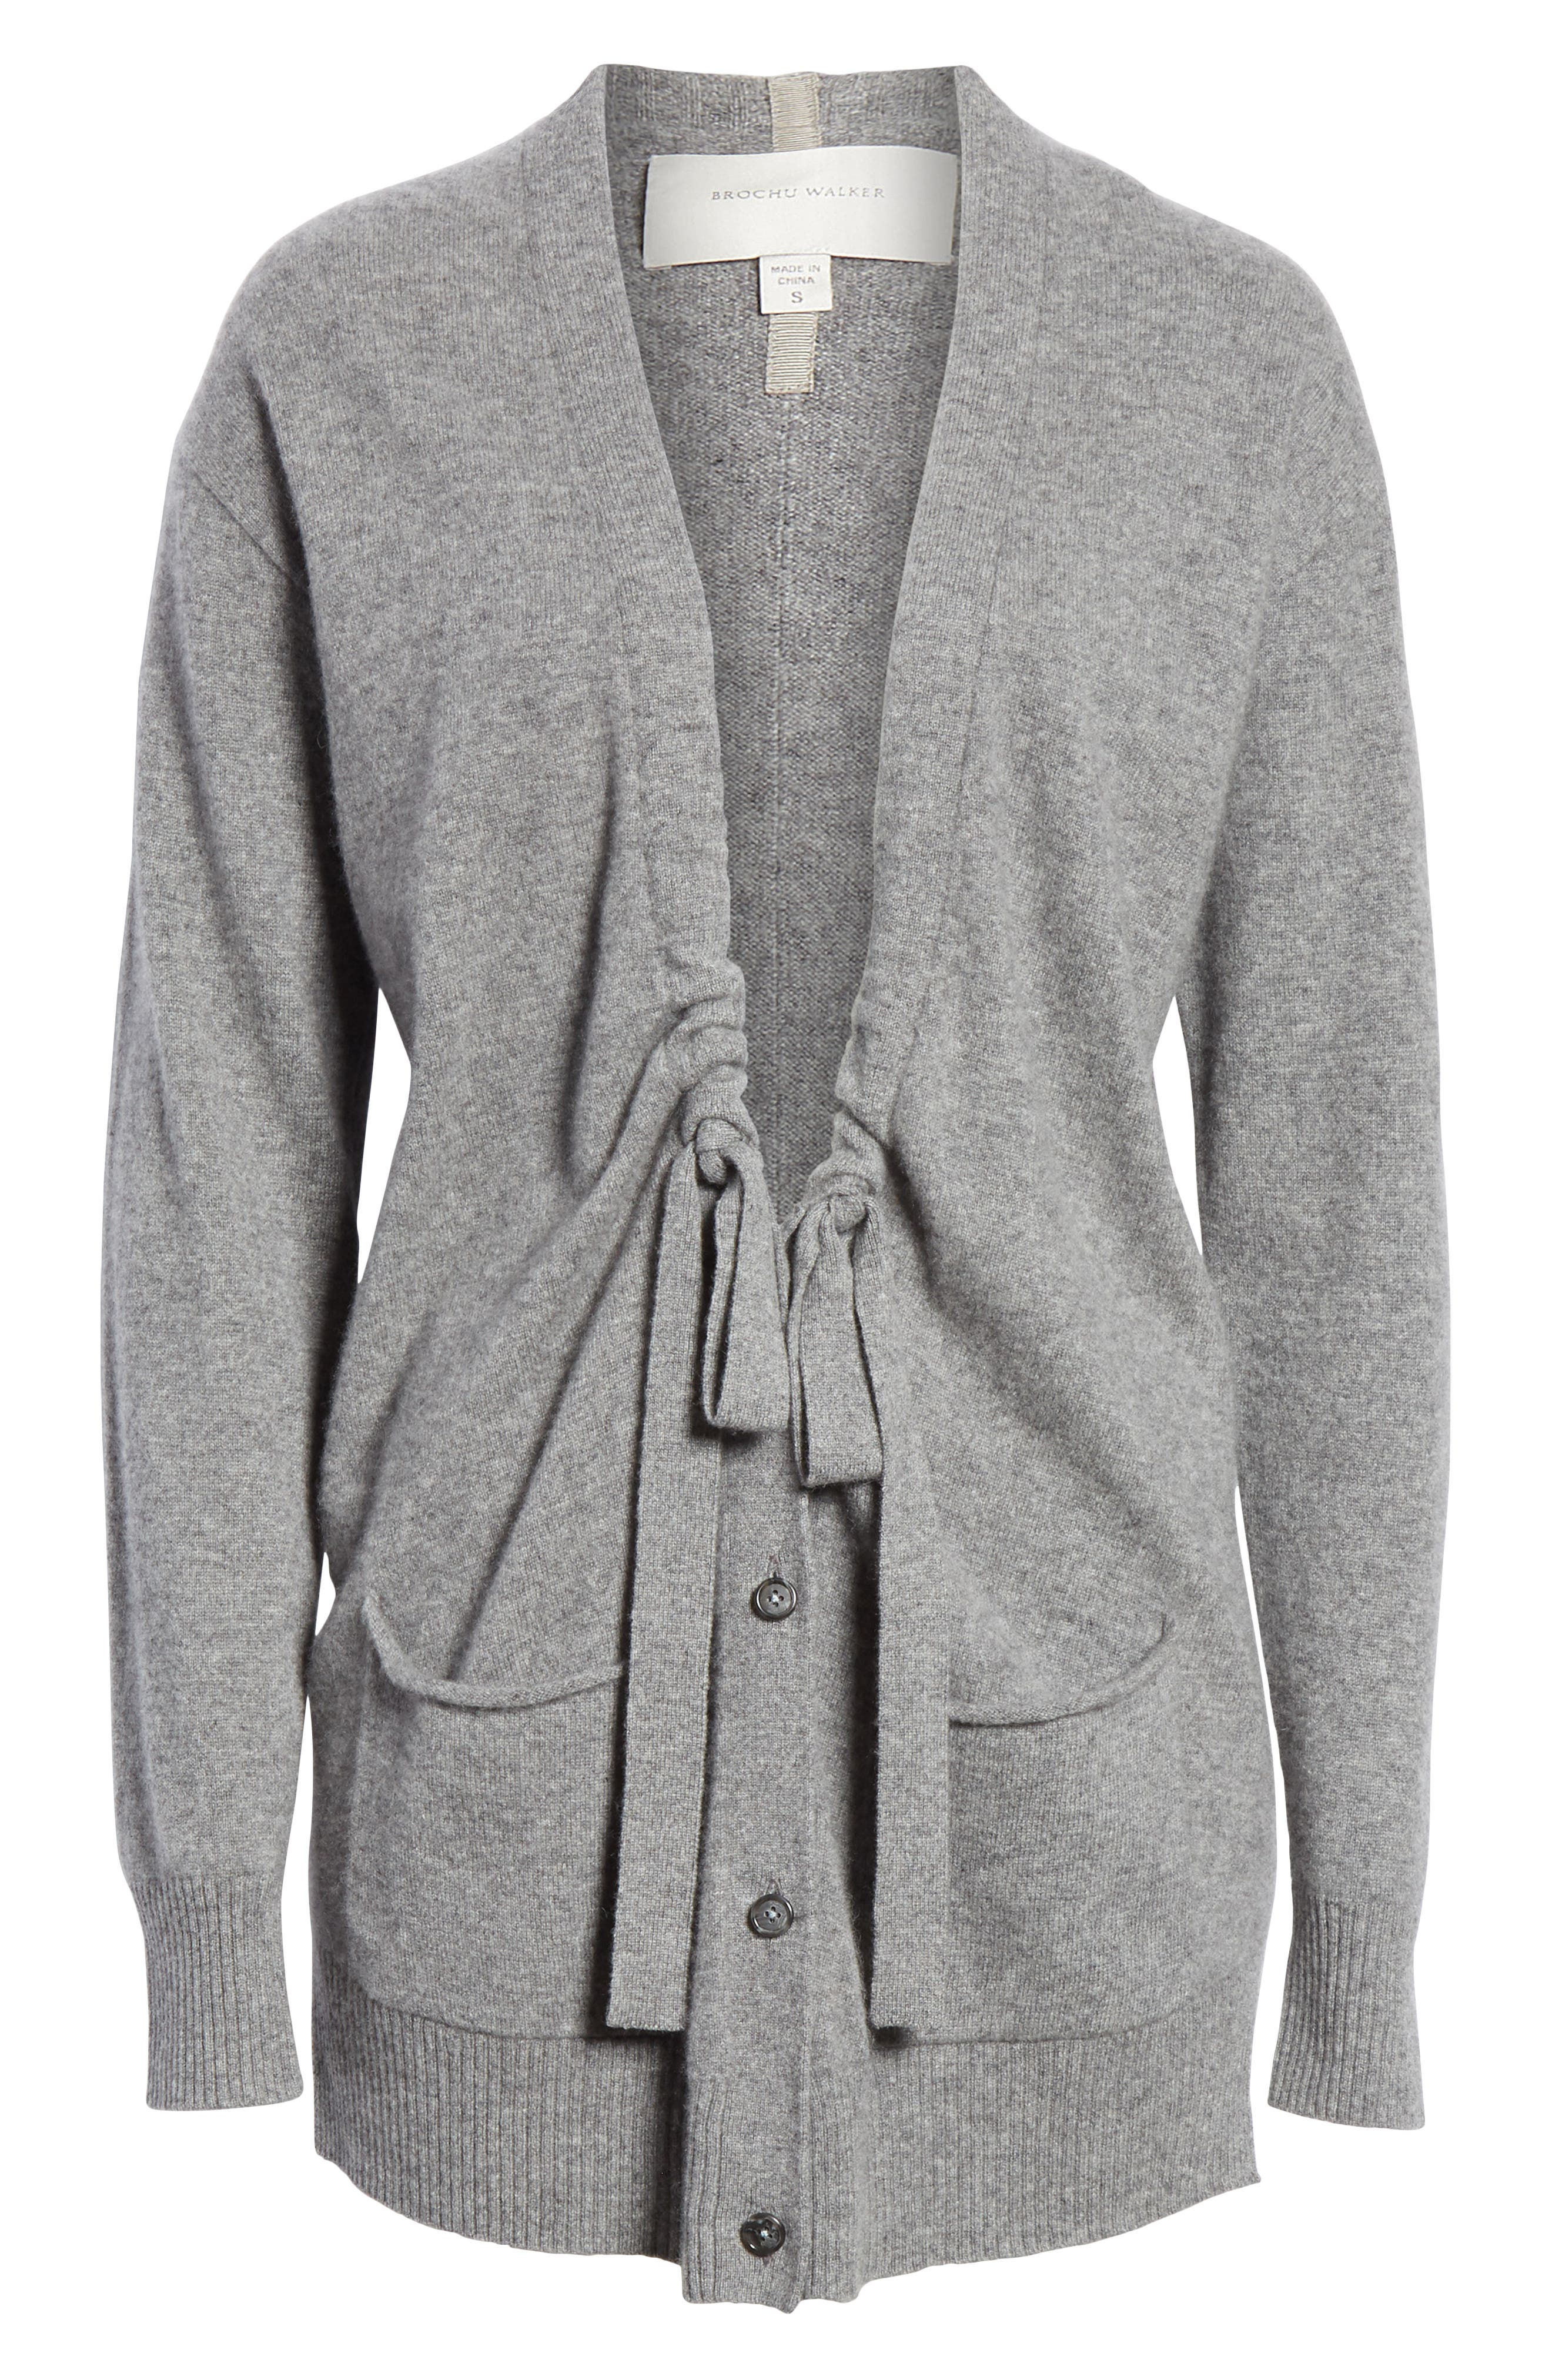 Bray Cashmere Cardigan,                             Alternate thumbnail 6, color,                             HEATHER GREY